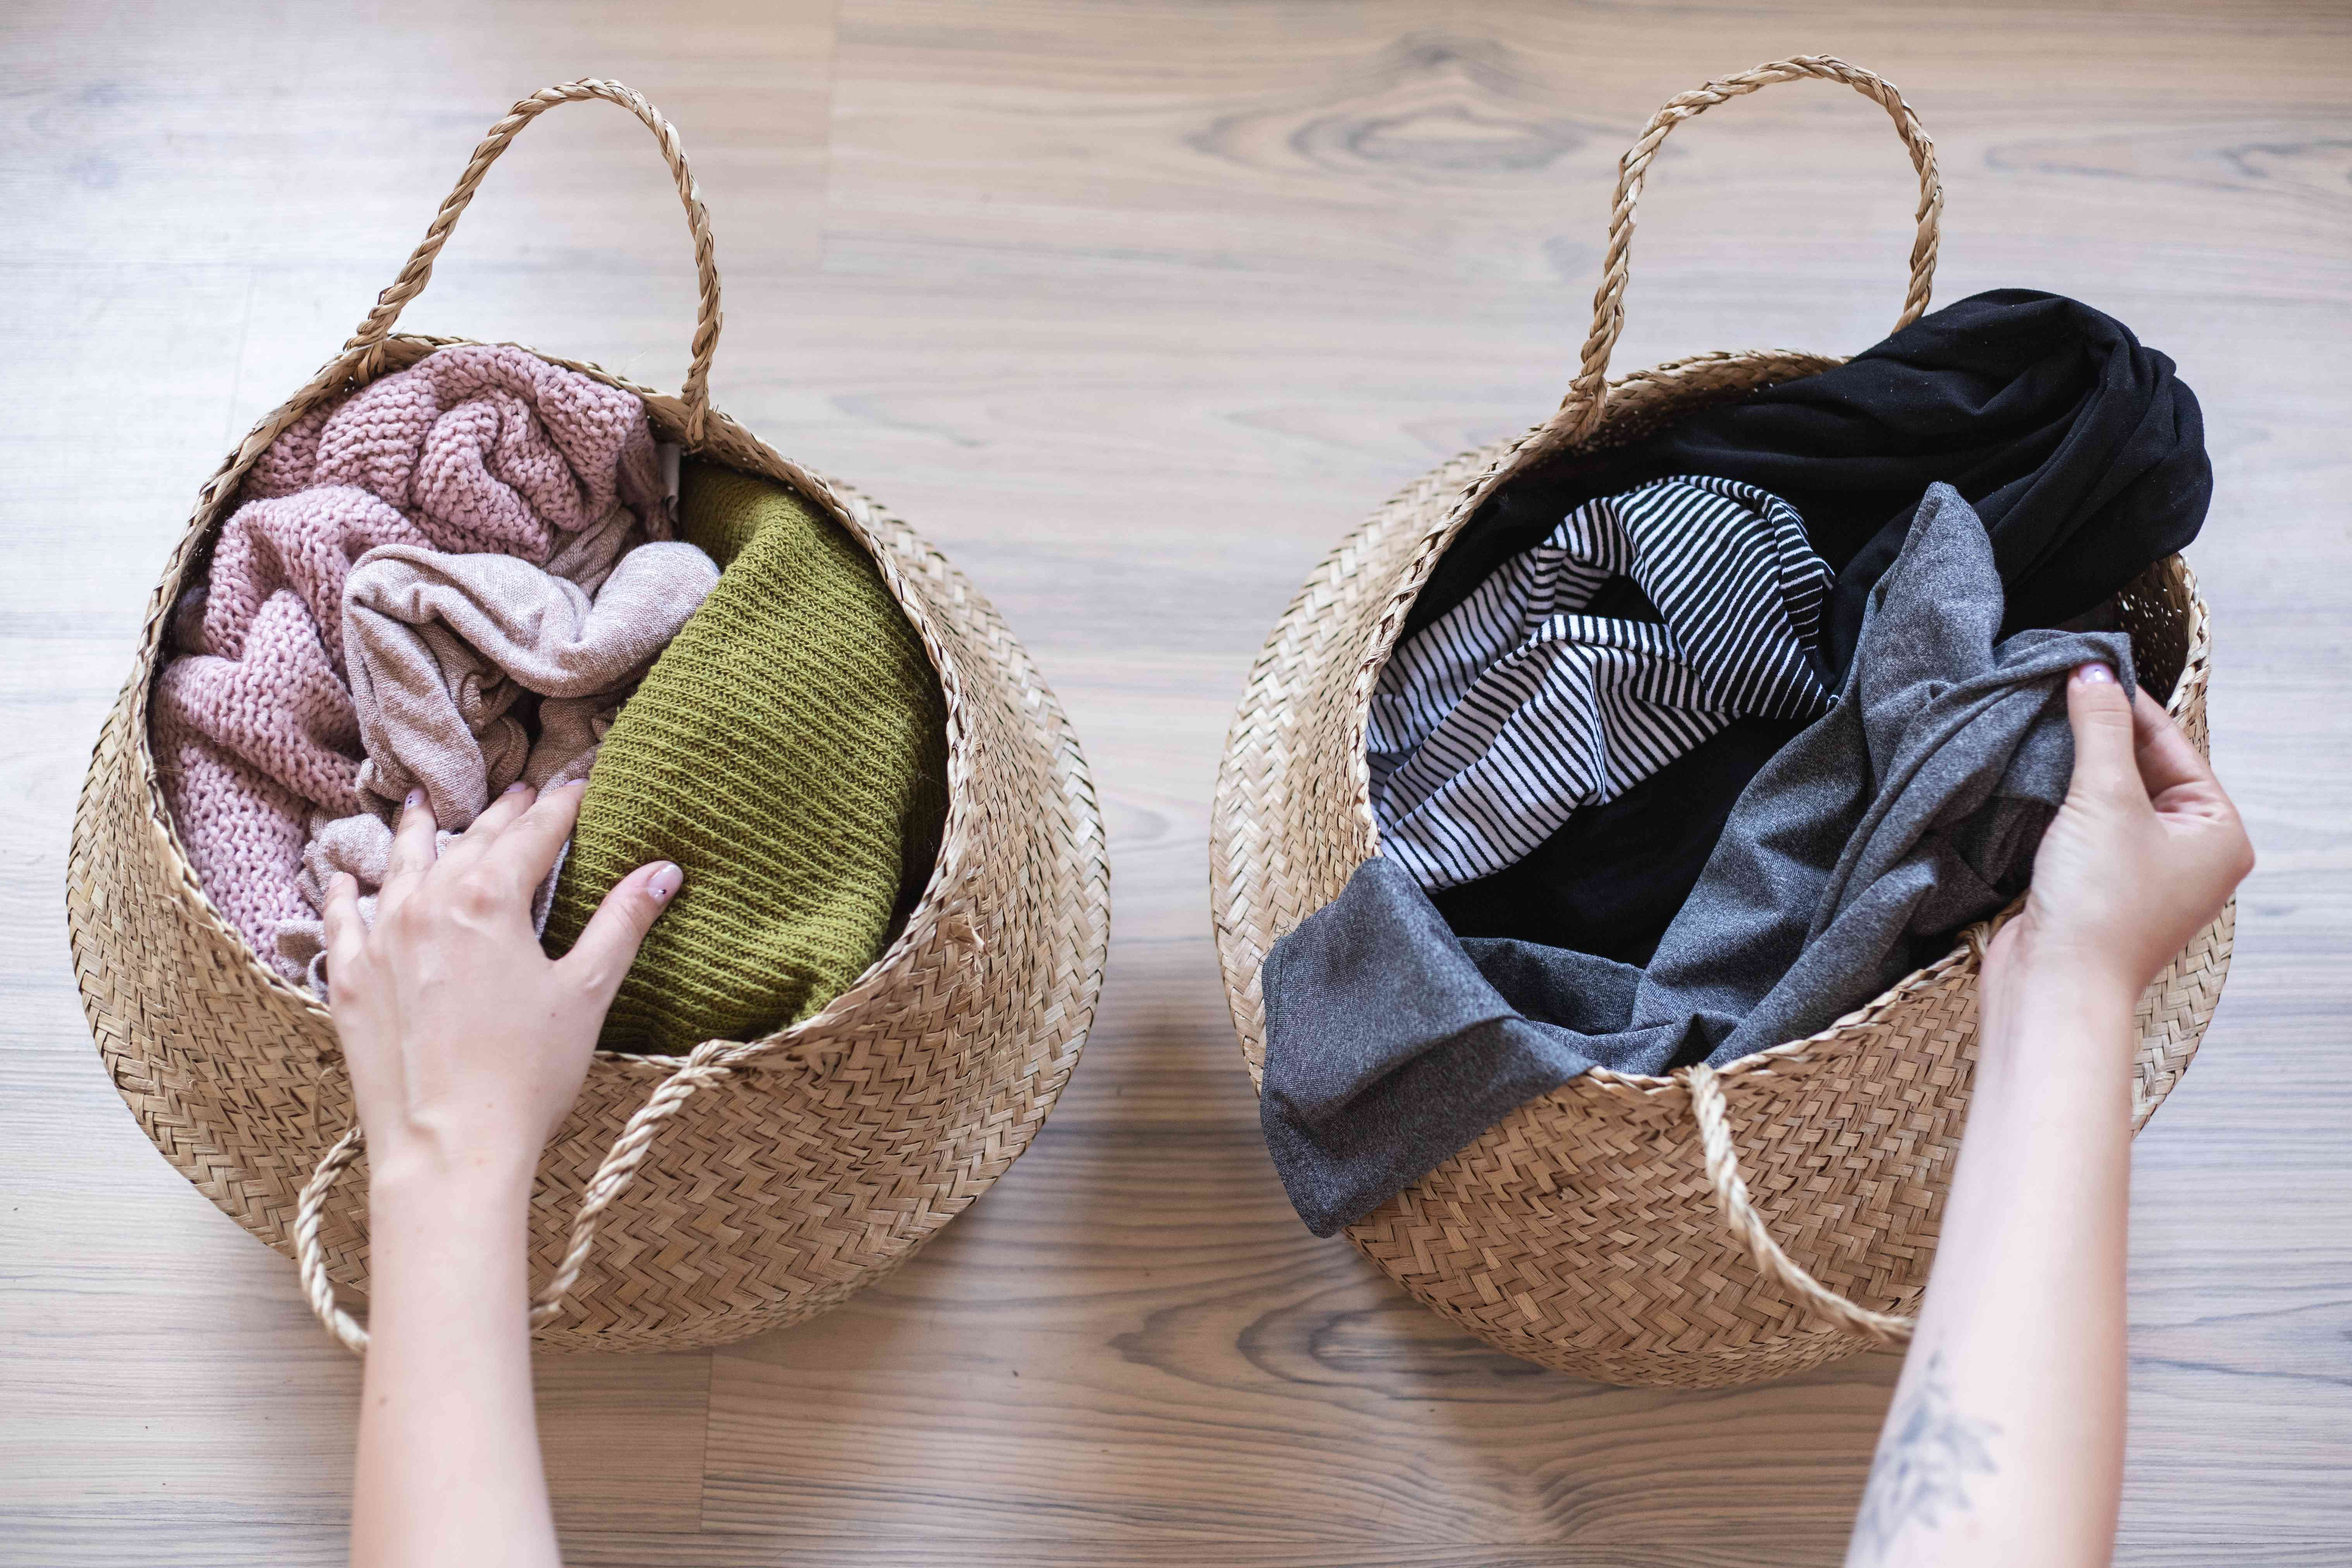 separate woven basket laundry hampers holding knitwear and workout wear